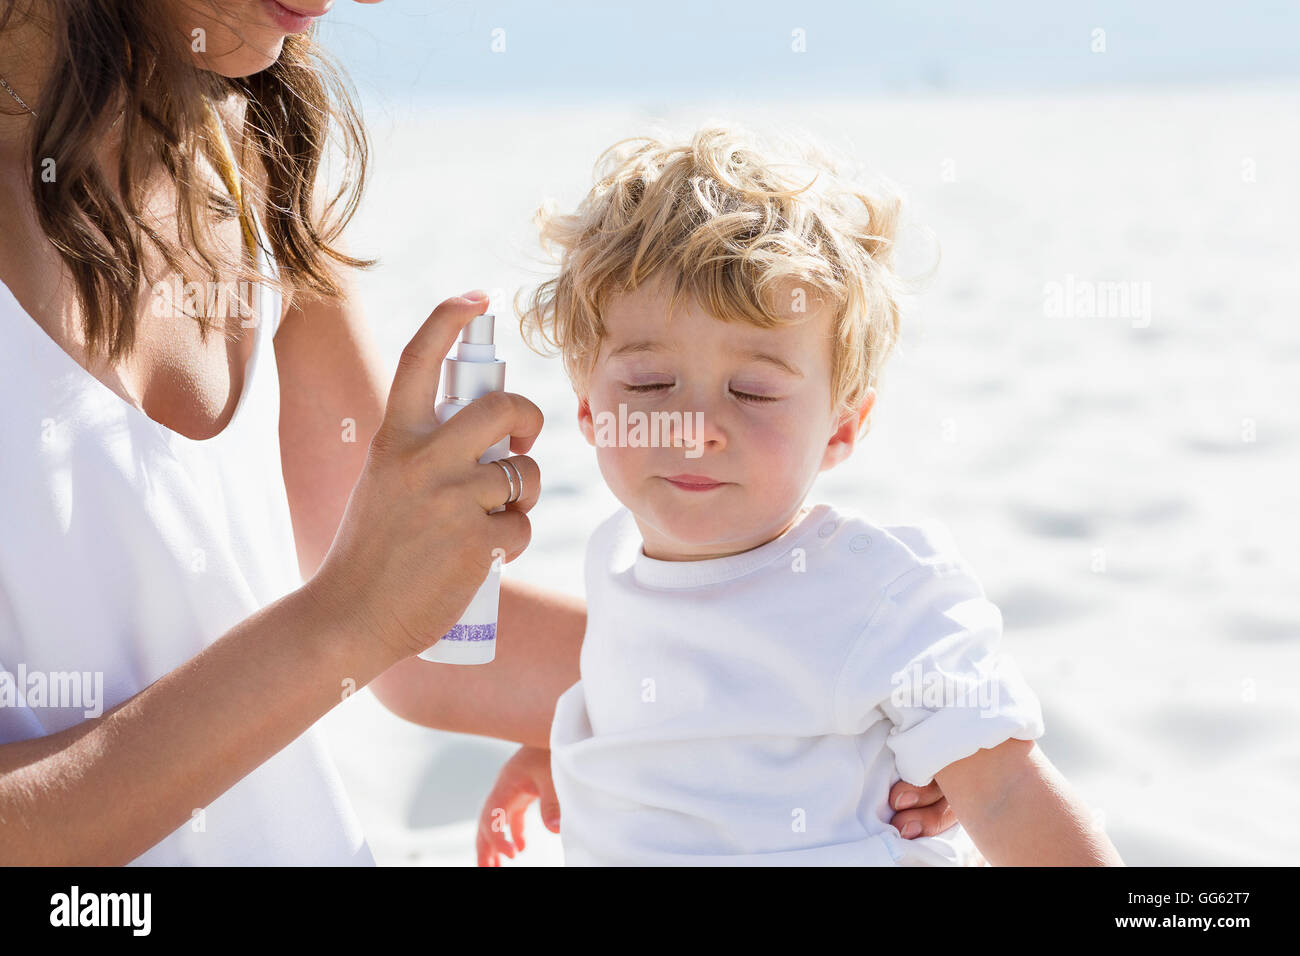 Woman holding a bottle of suntan lotion with her son - Stock Image